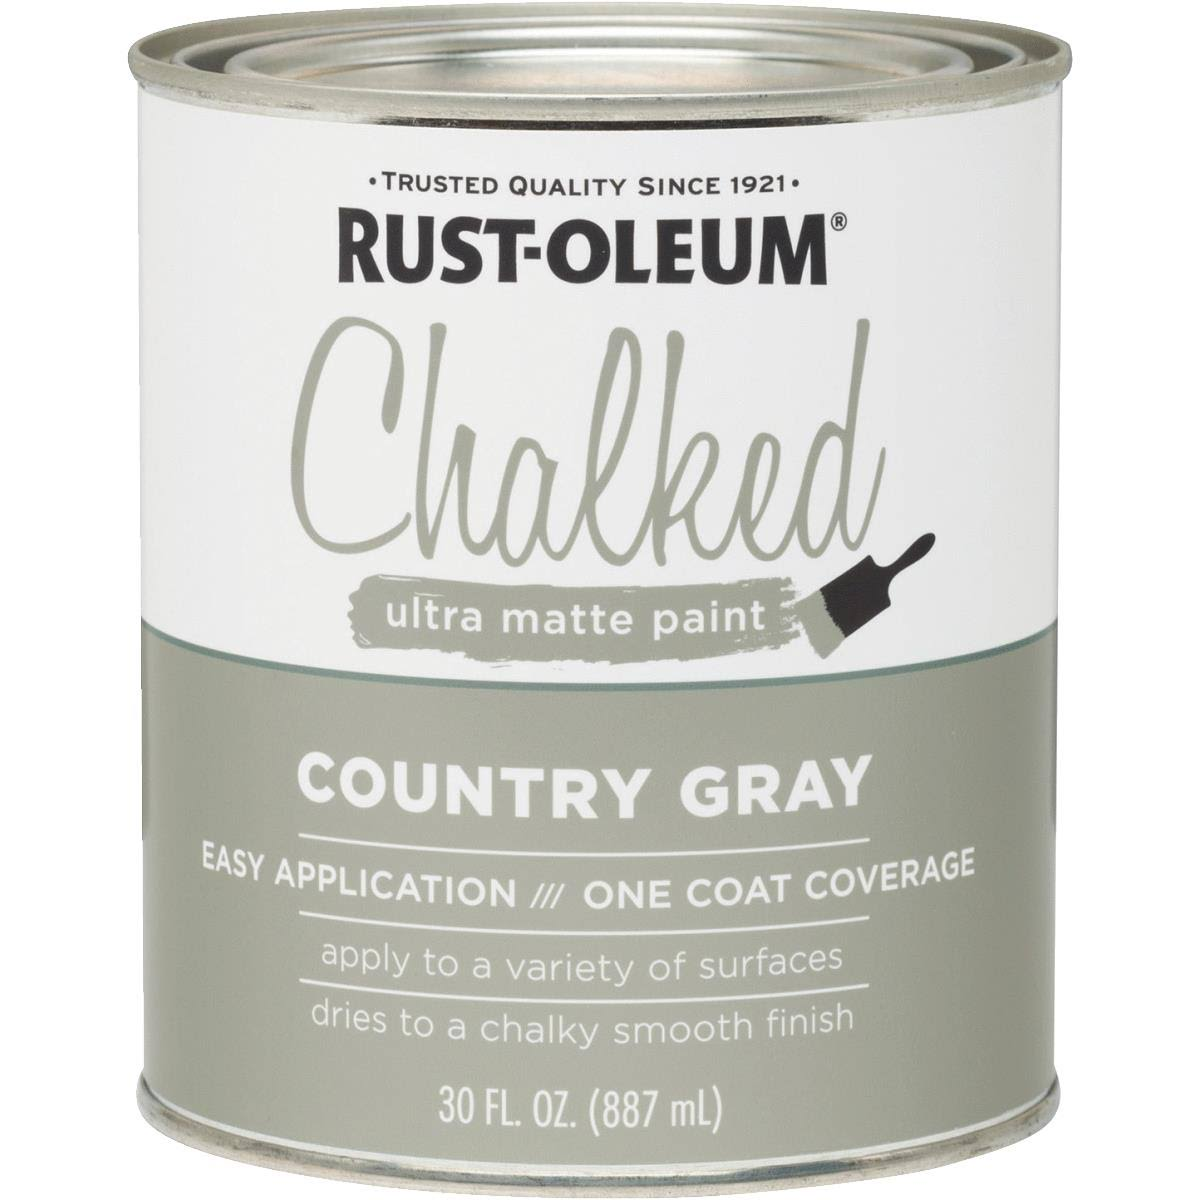 Rust-Oleum 285141 Ultra Matte Interior Chalked Paint - Country Gray, 30oz